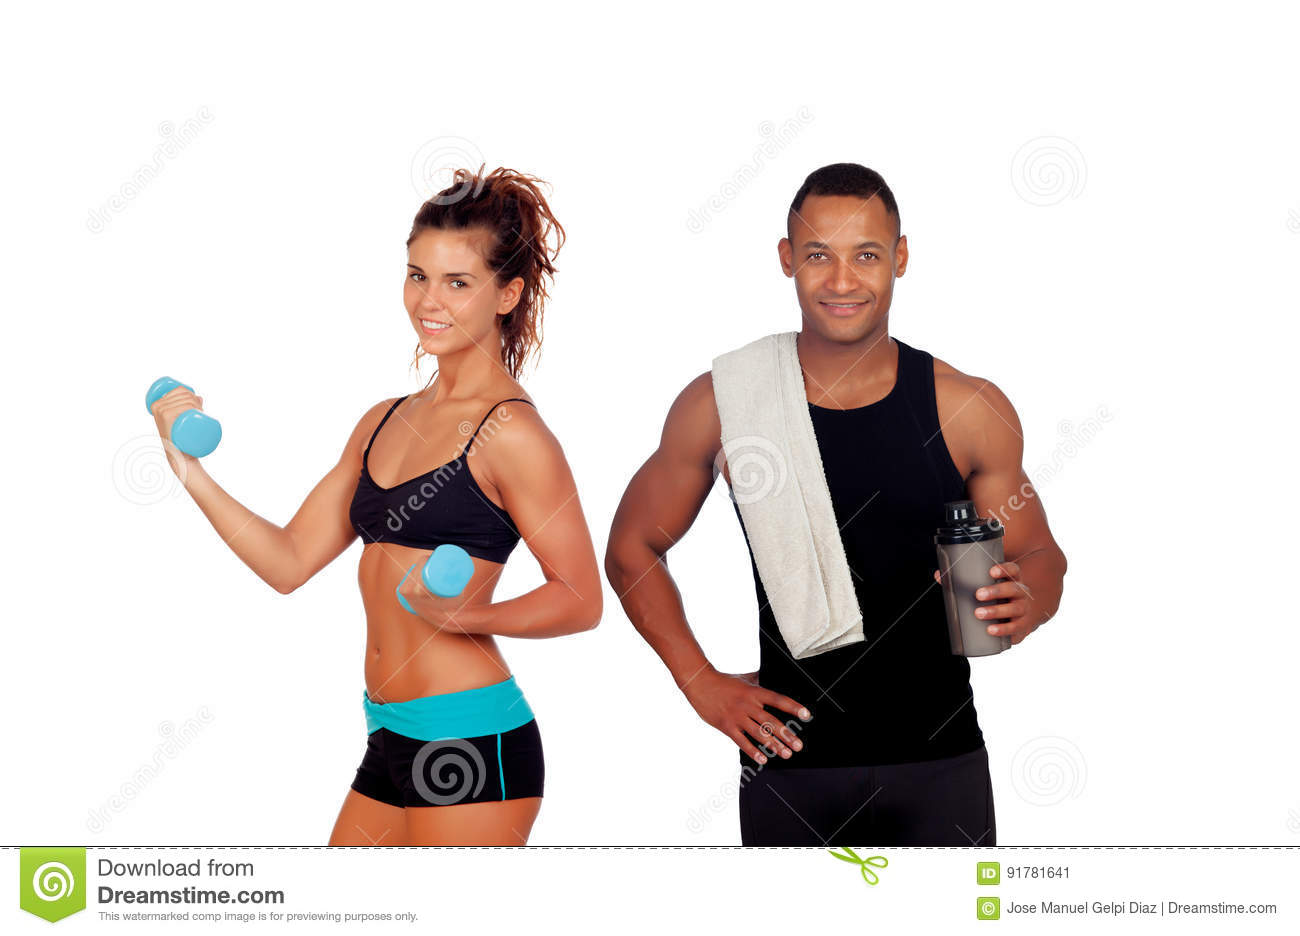 Athletic man after doing exercises drinking shaker proteincocktail and slim girl training